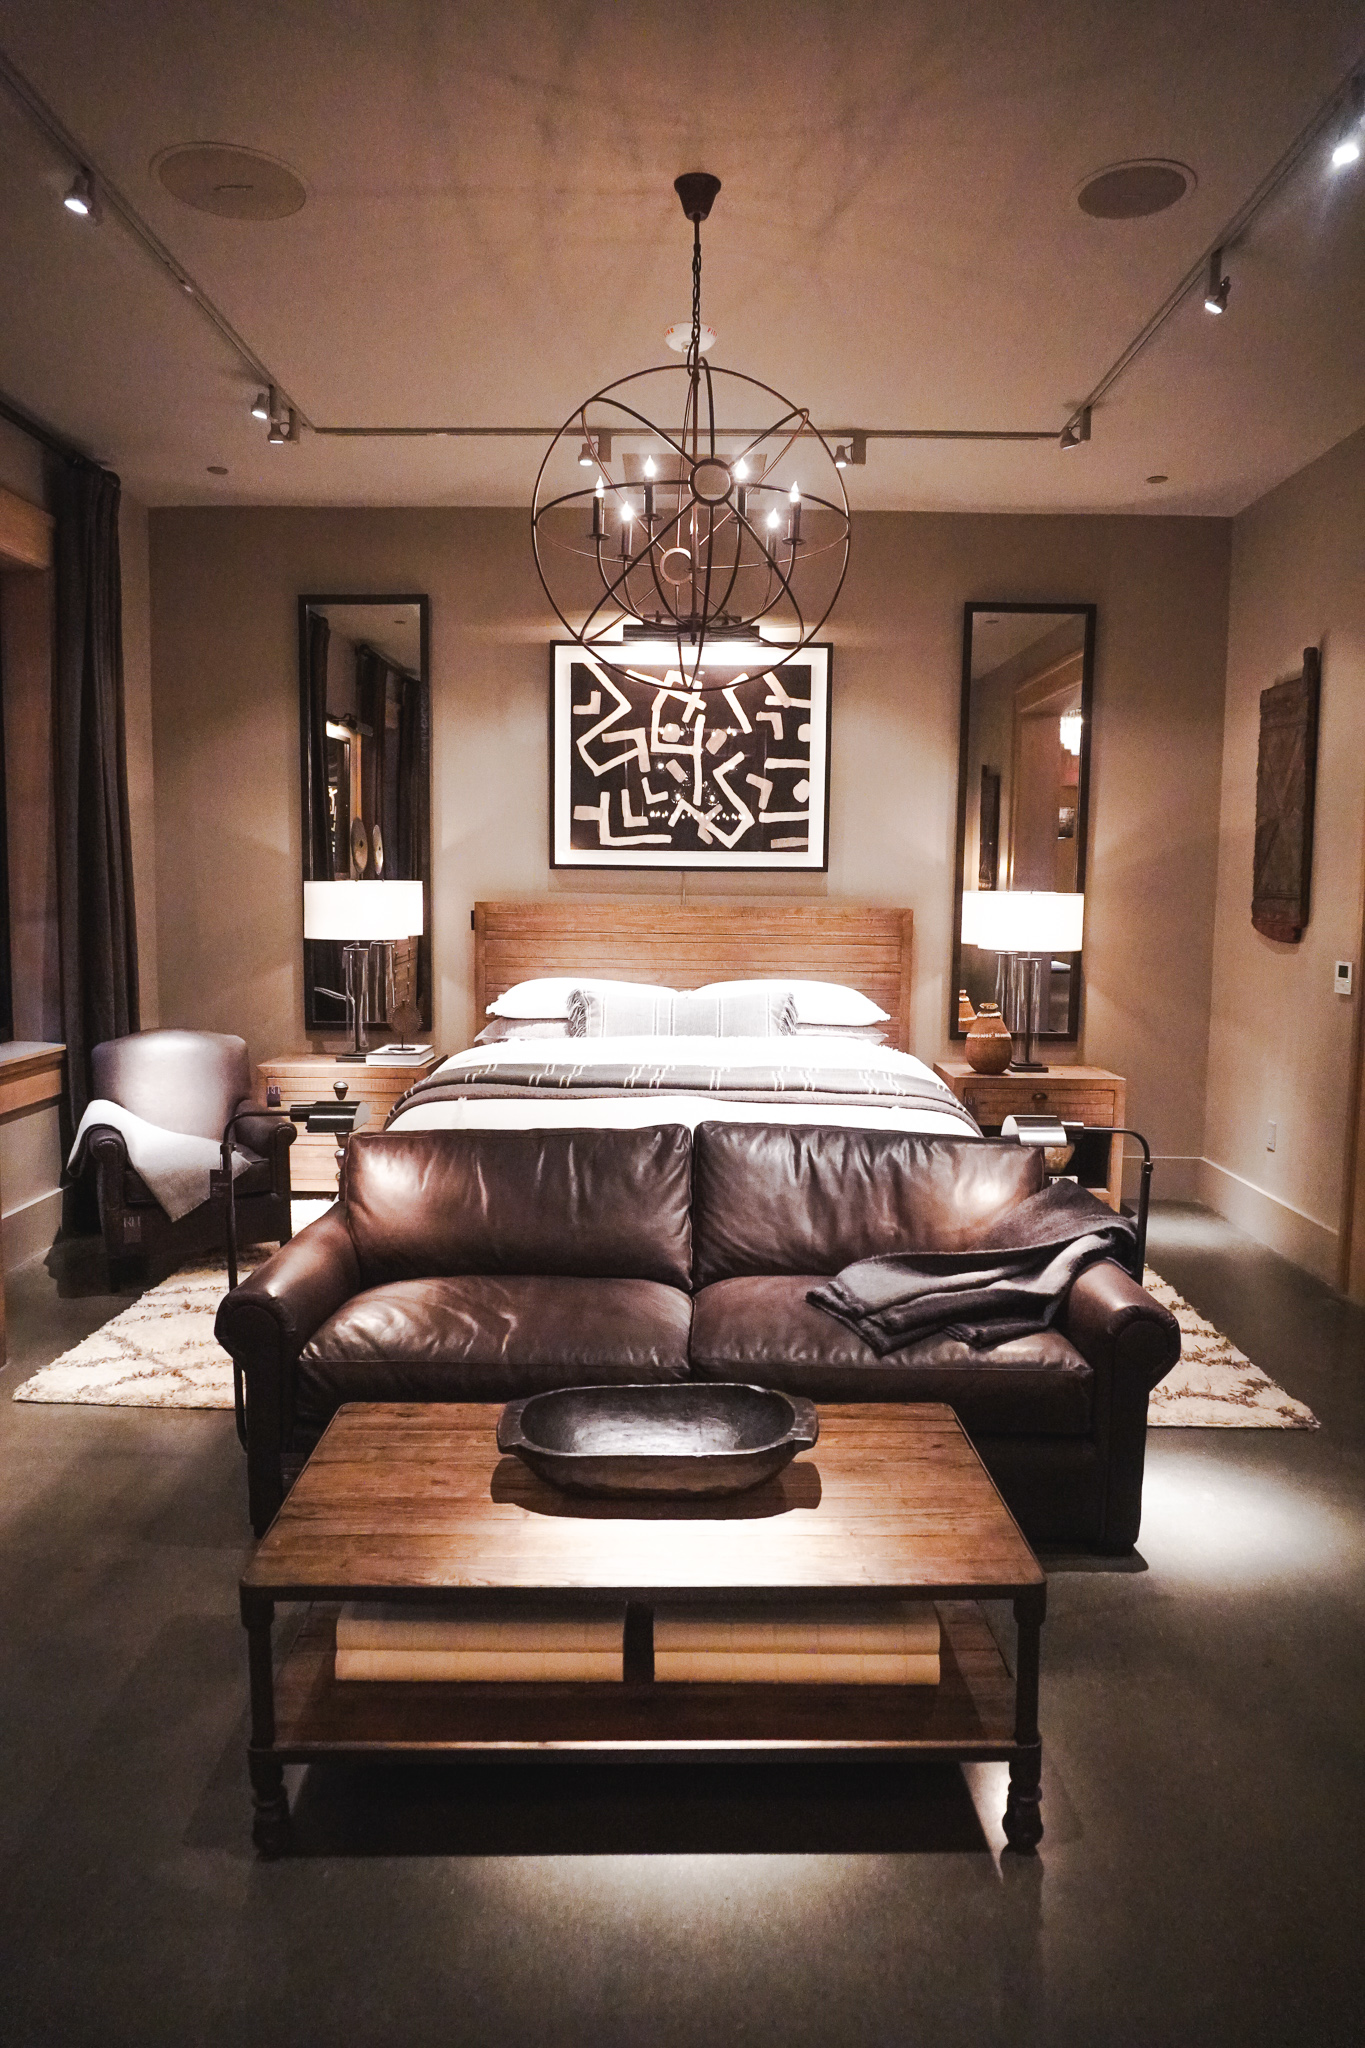 restoration-hardware-nashville-tn.jpg